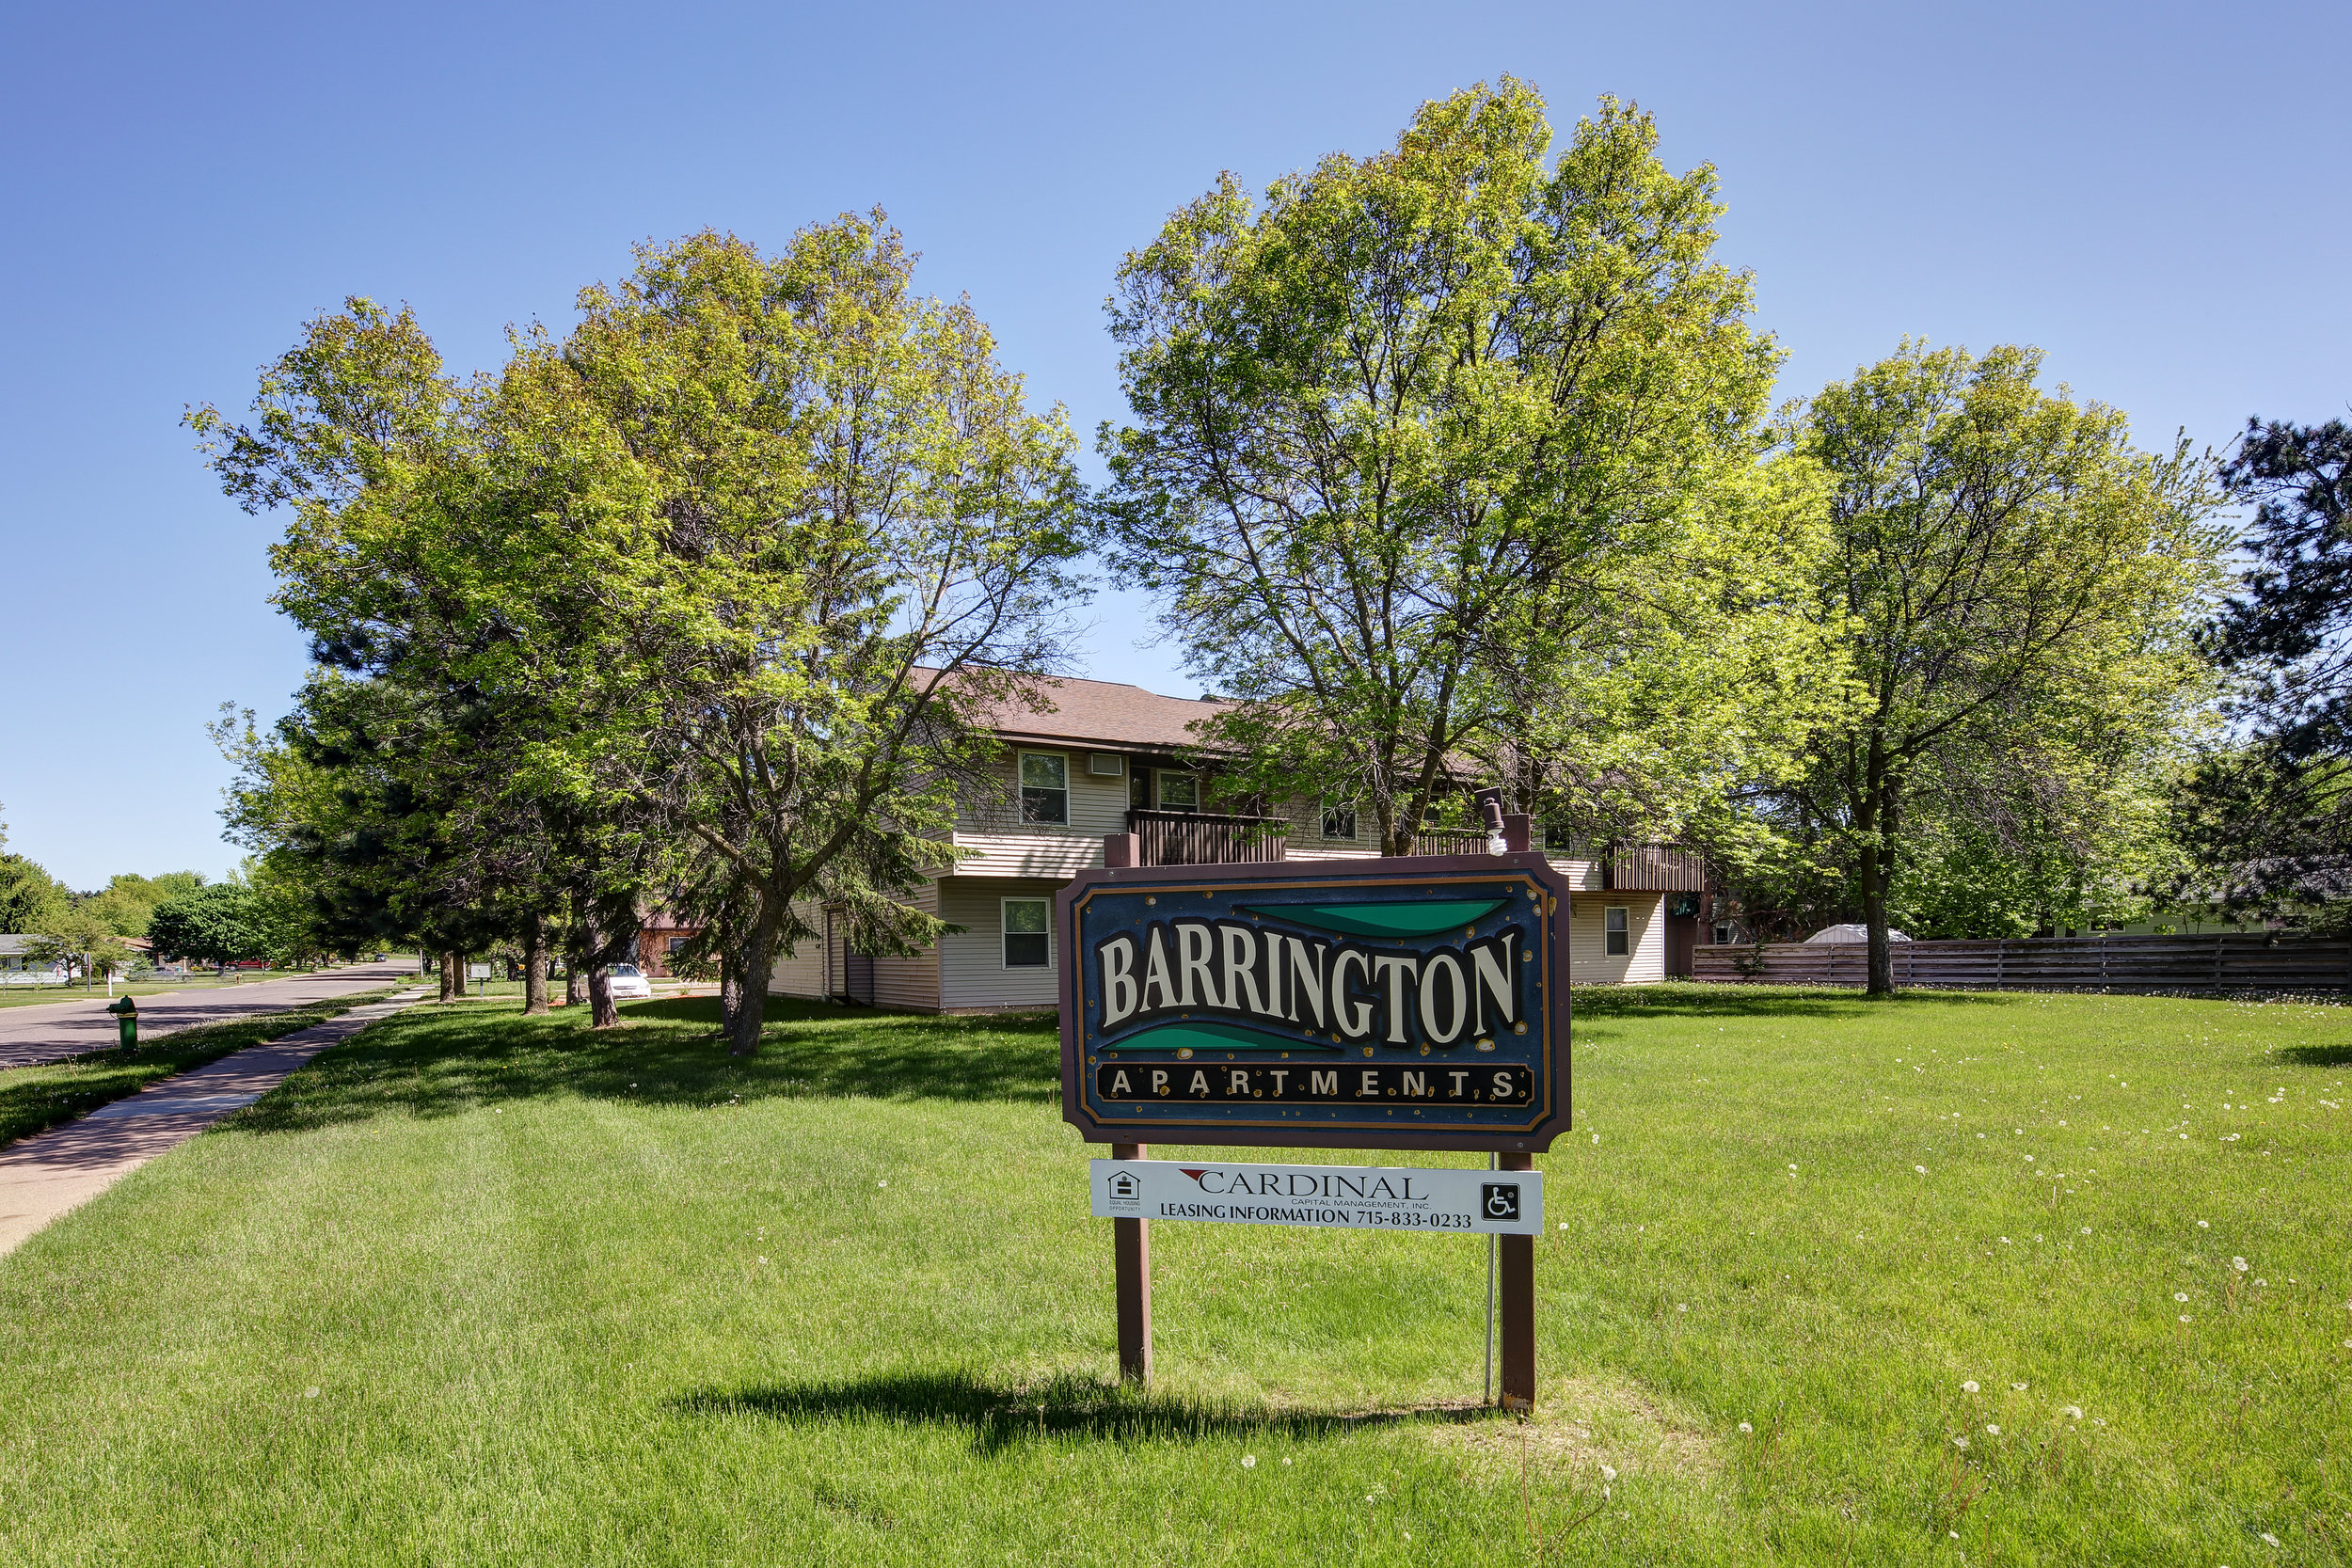 Barrington1.jpg